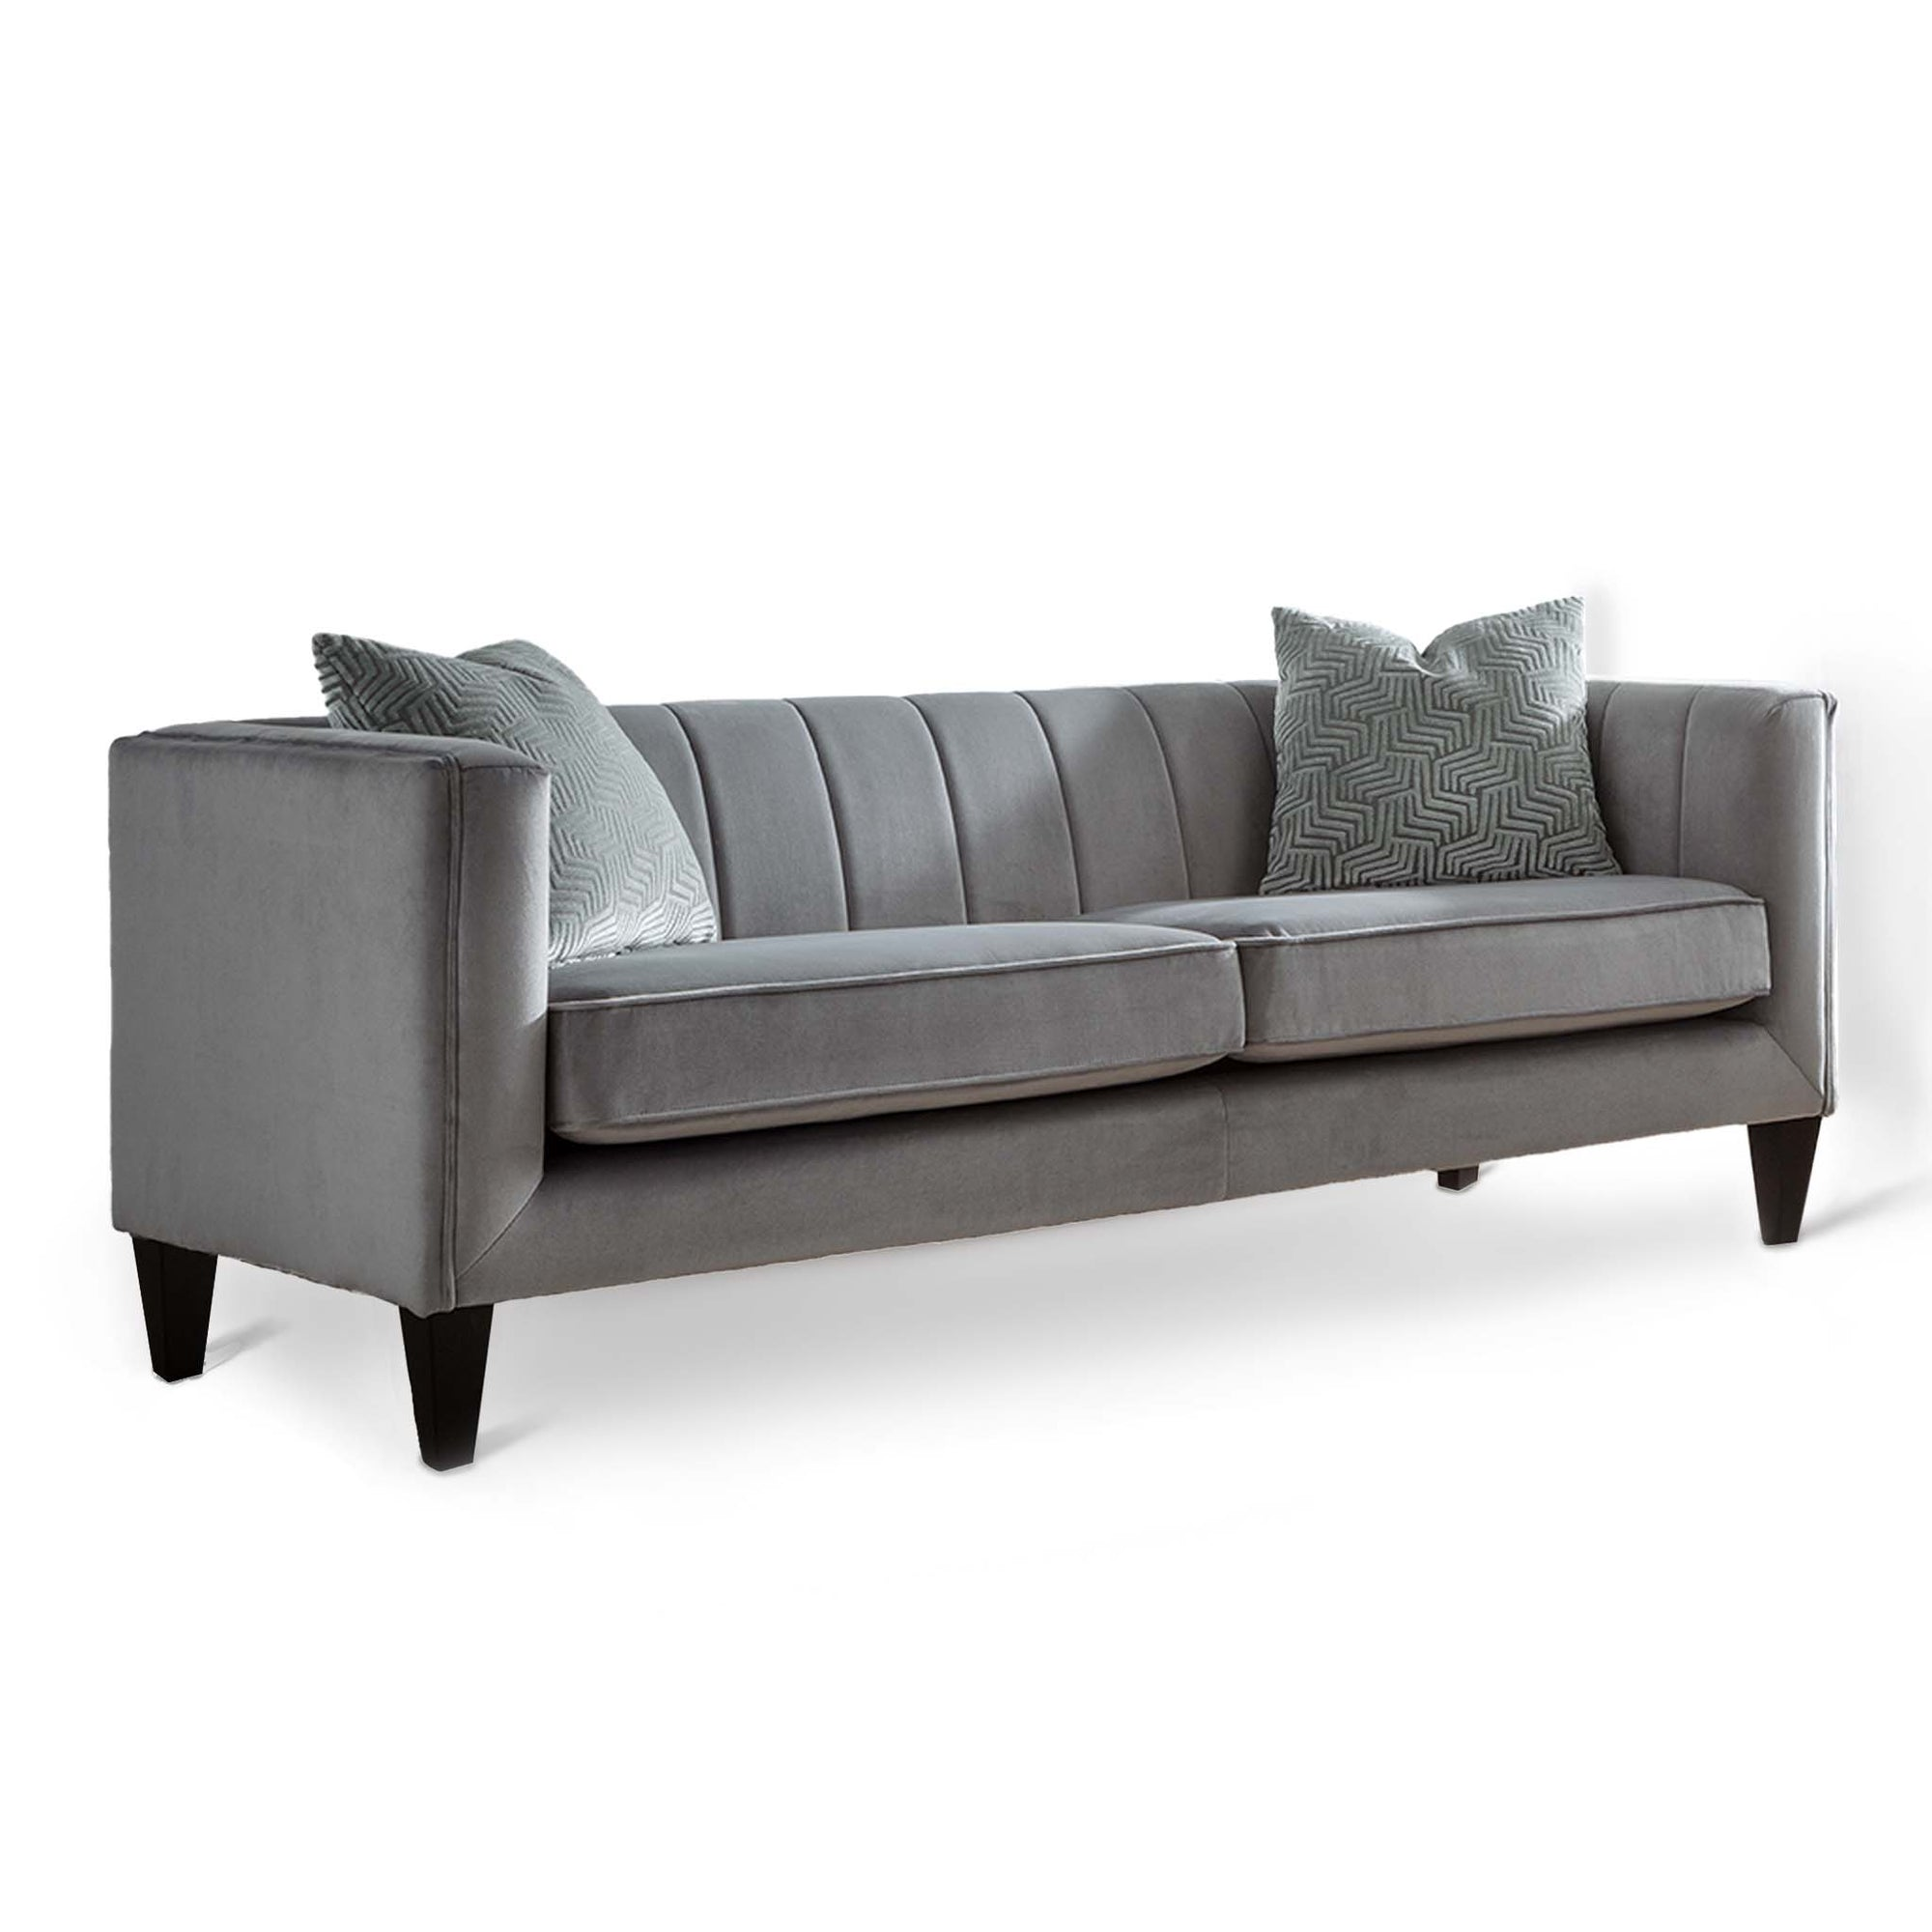 Savana Grey Velvet 3 Seater Sofa from Roseland Furniture